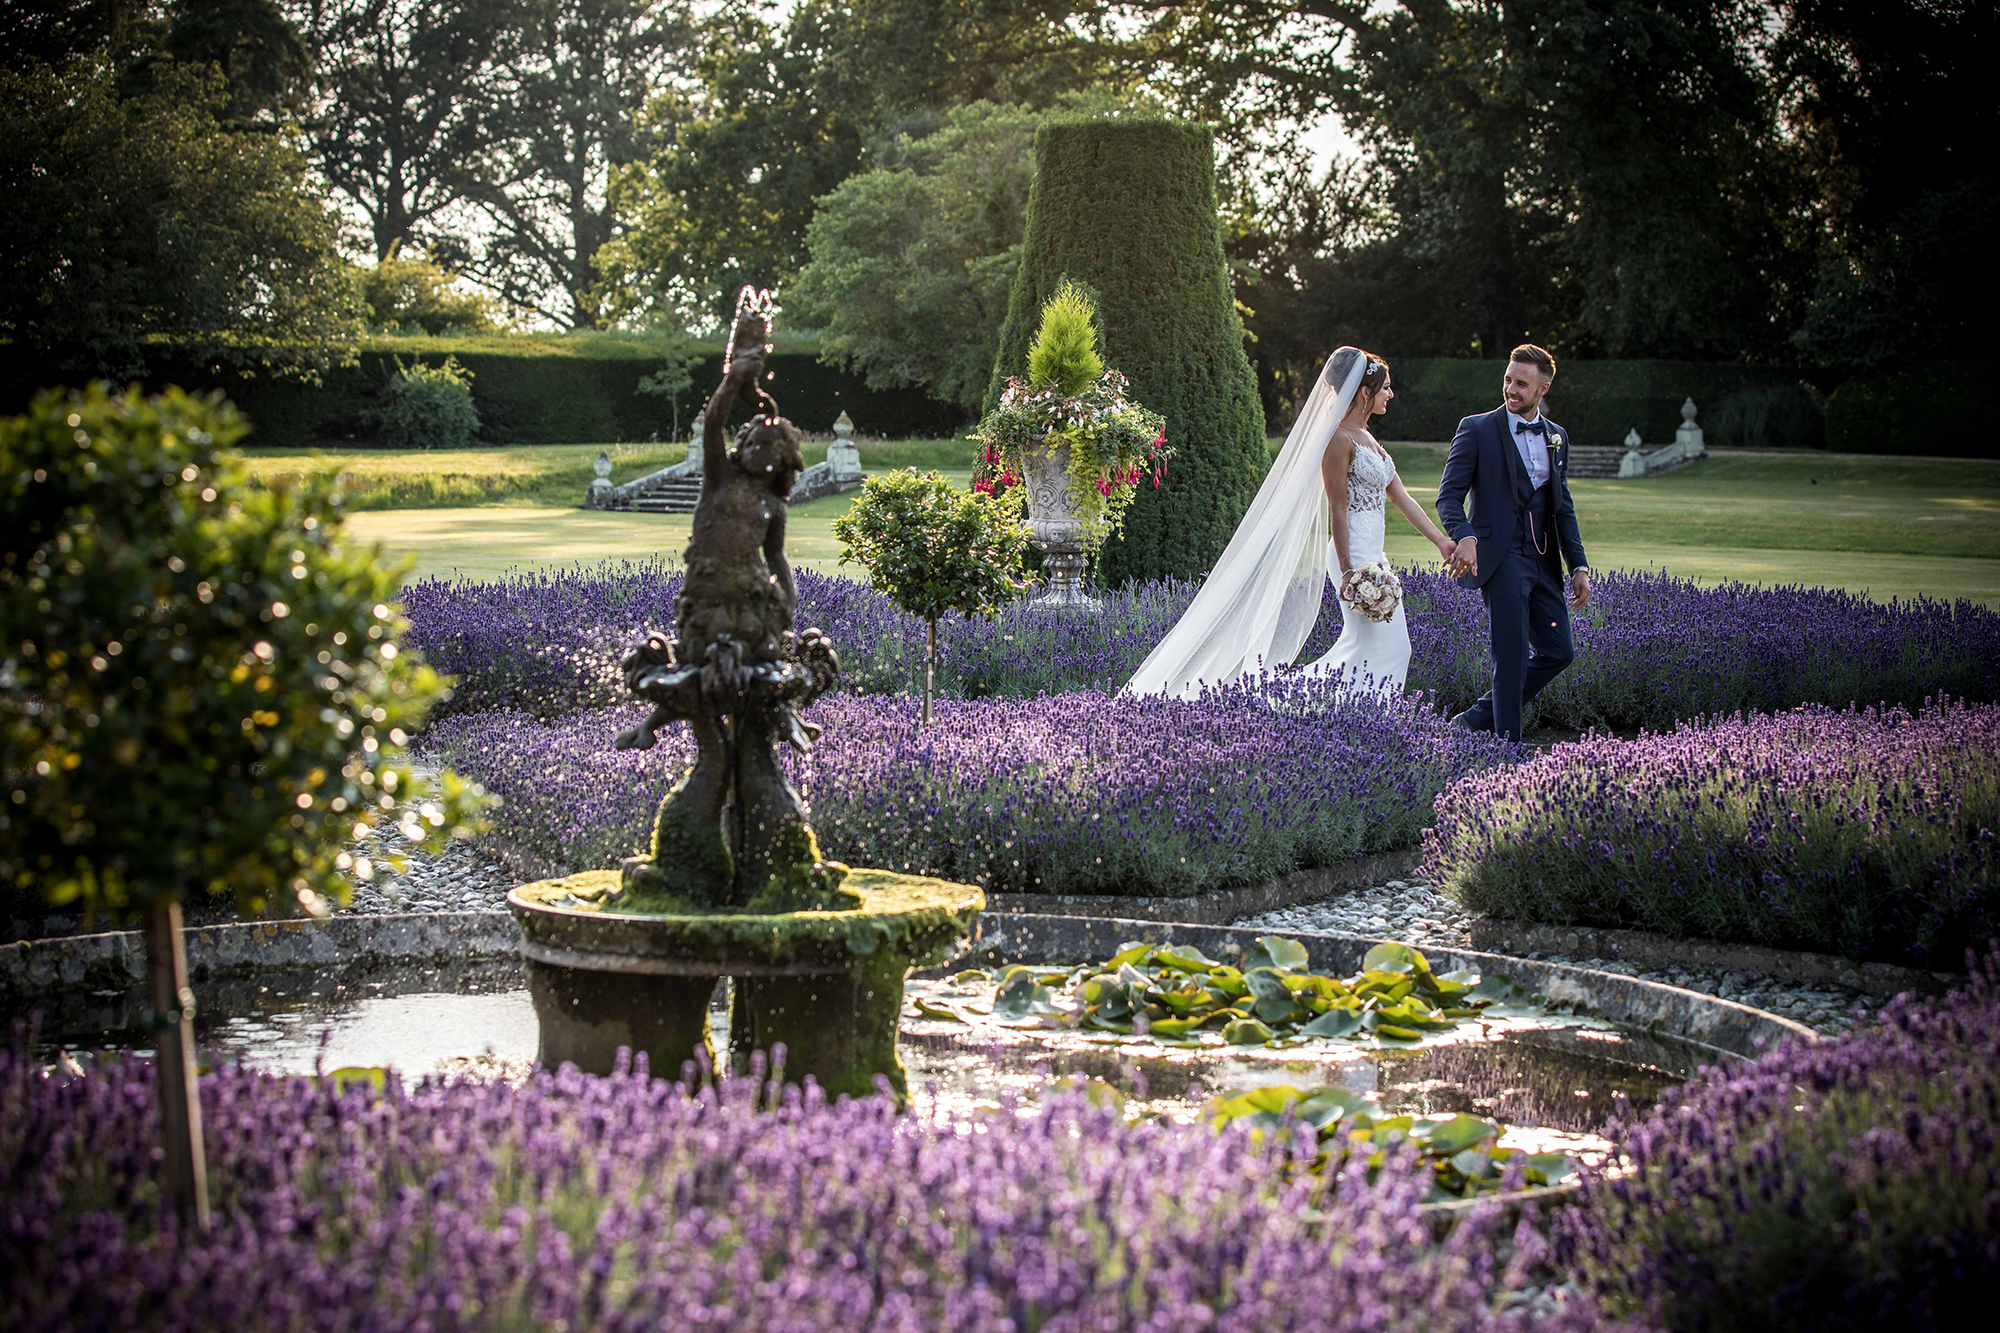 Newly married couple holding hands, walking through the lavender gardens at Hengrave Hall